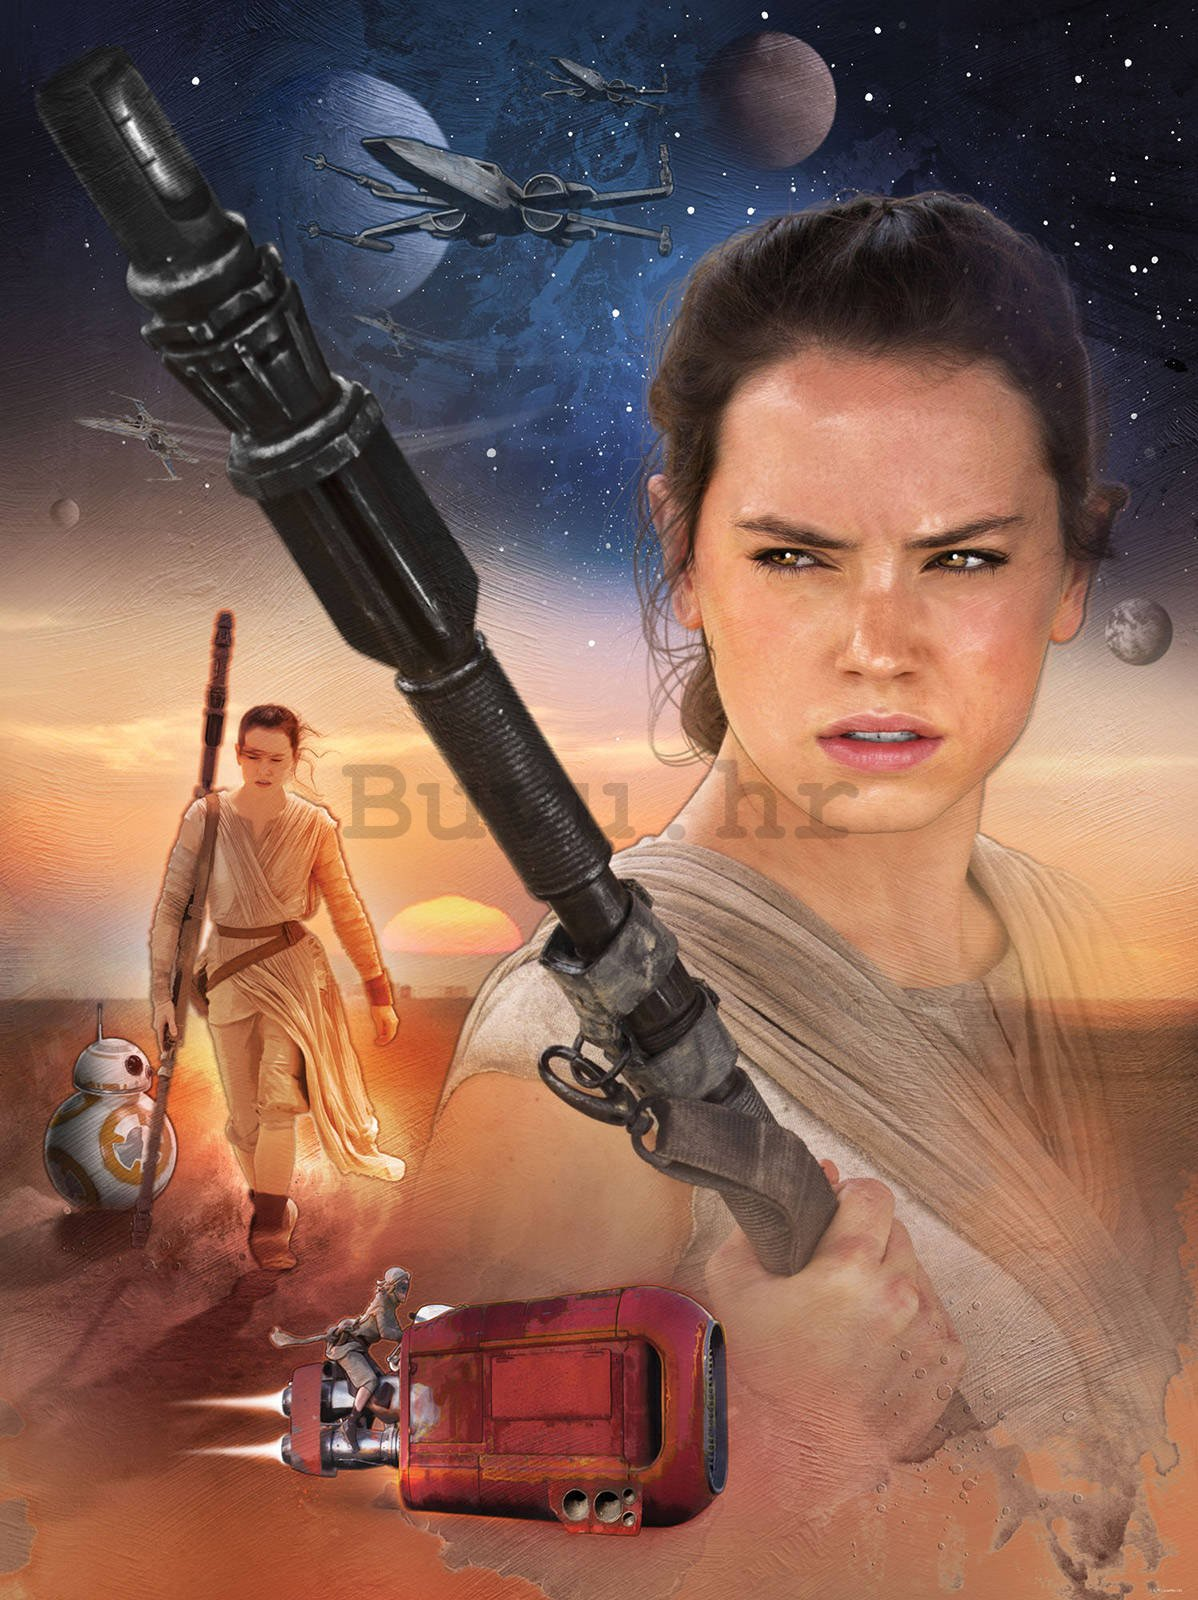 Foto tapeta: Star Wars, Rey - 184x254cm